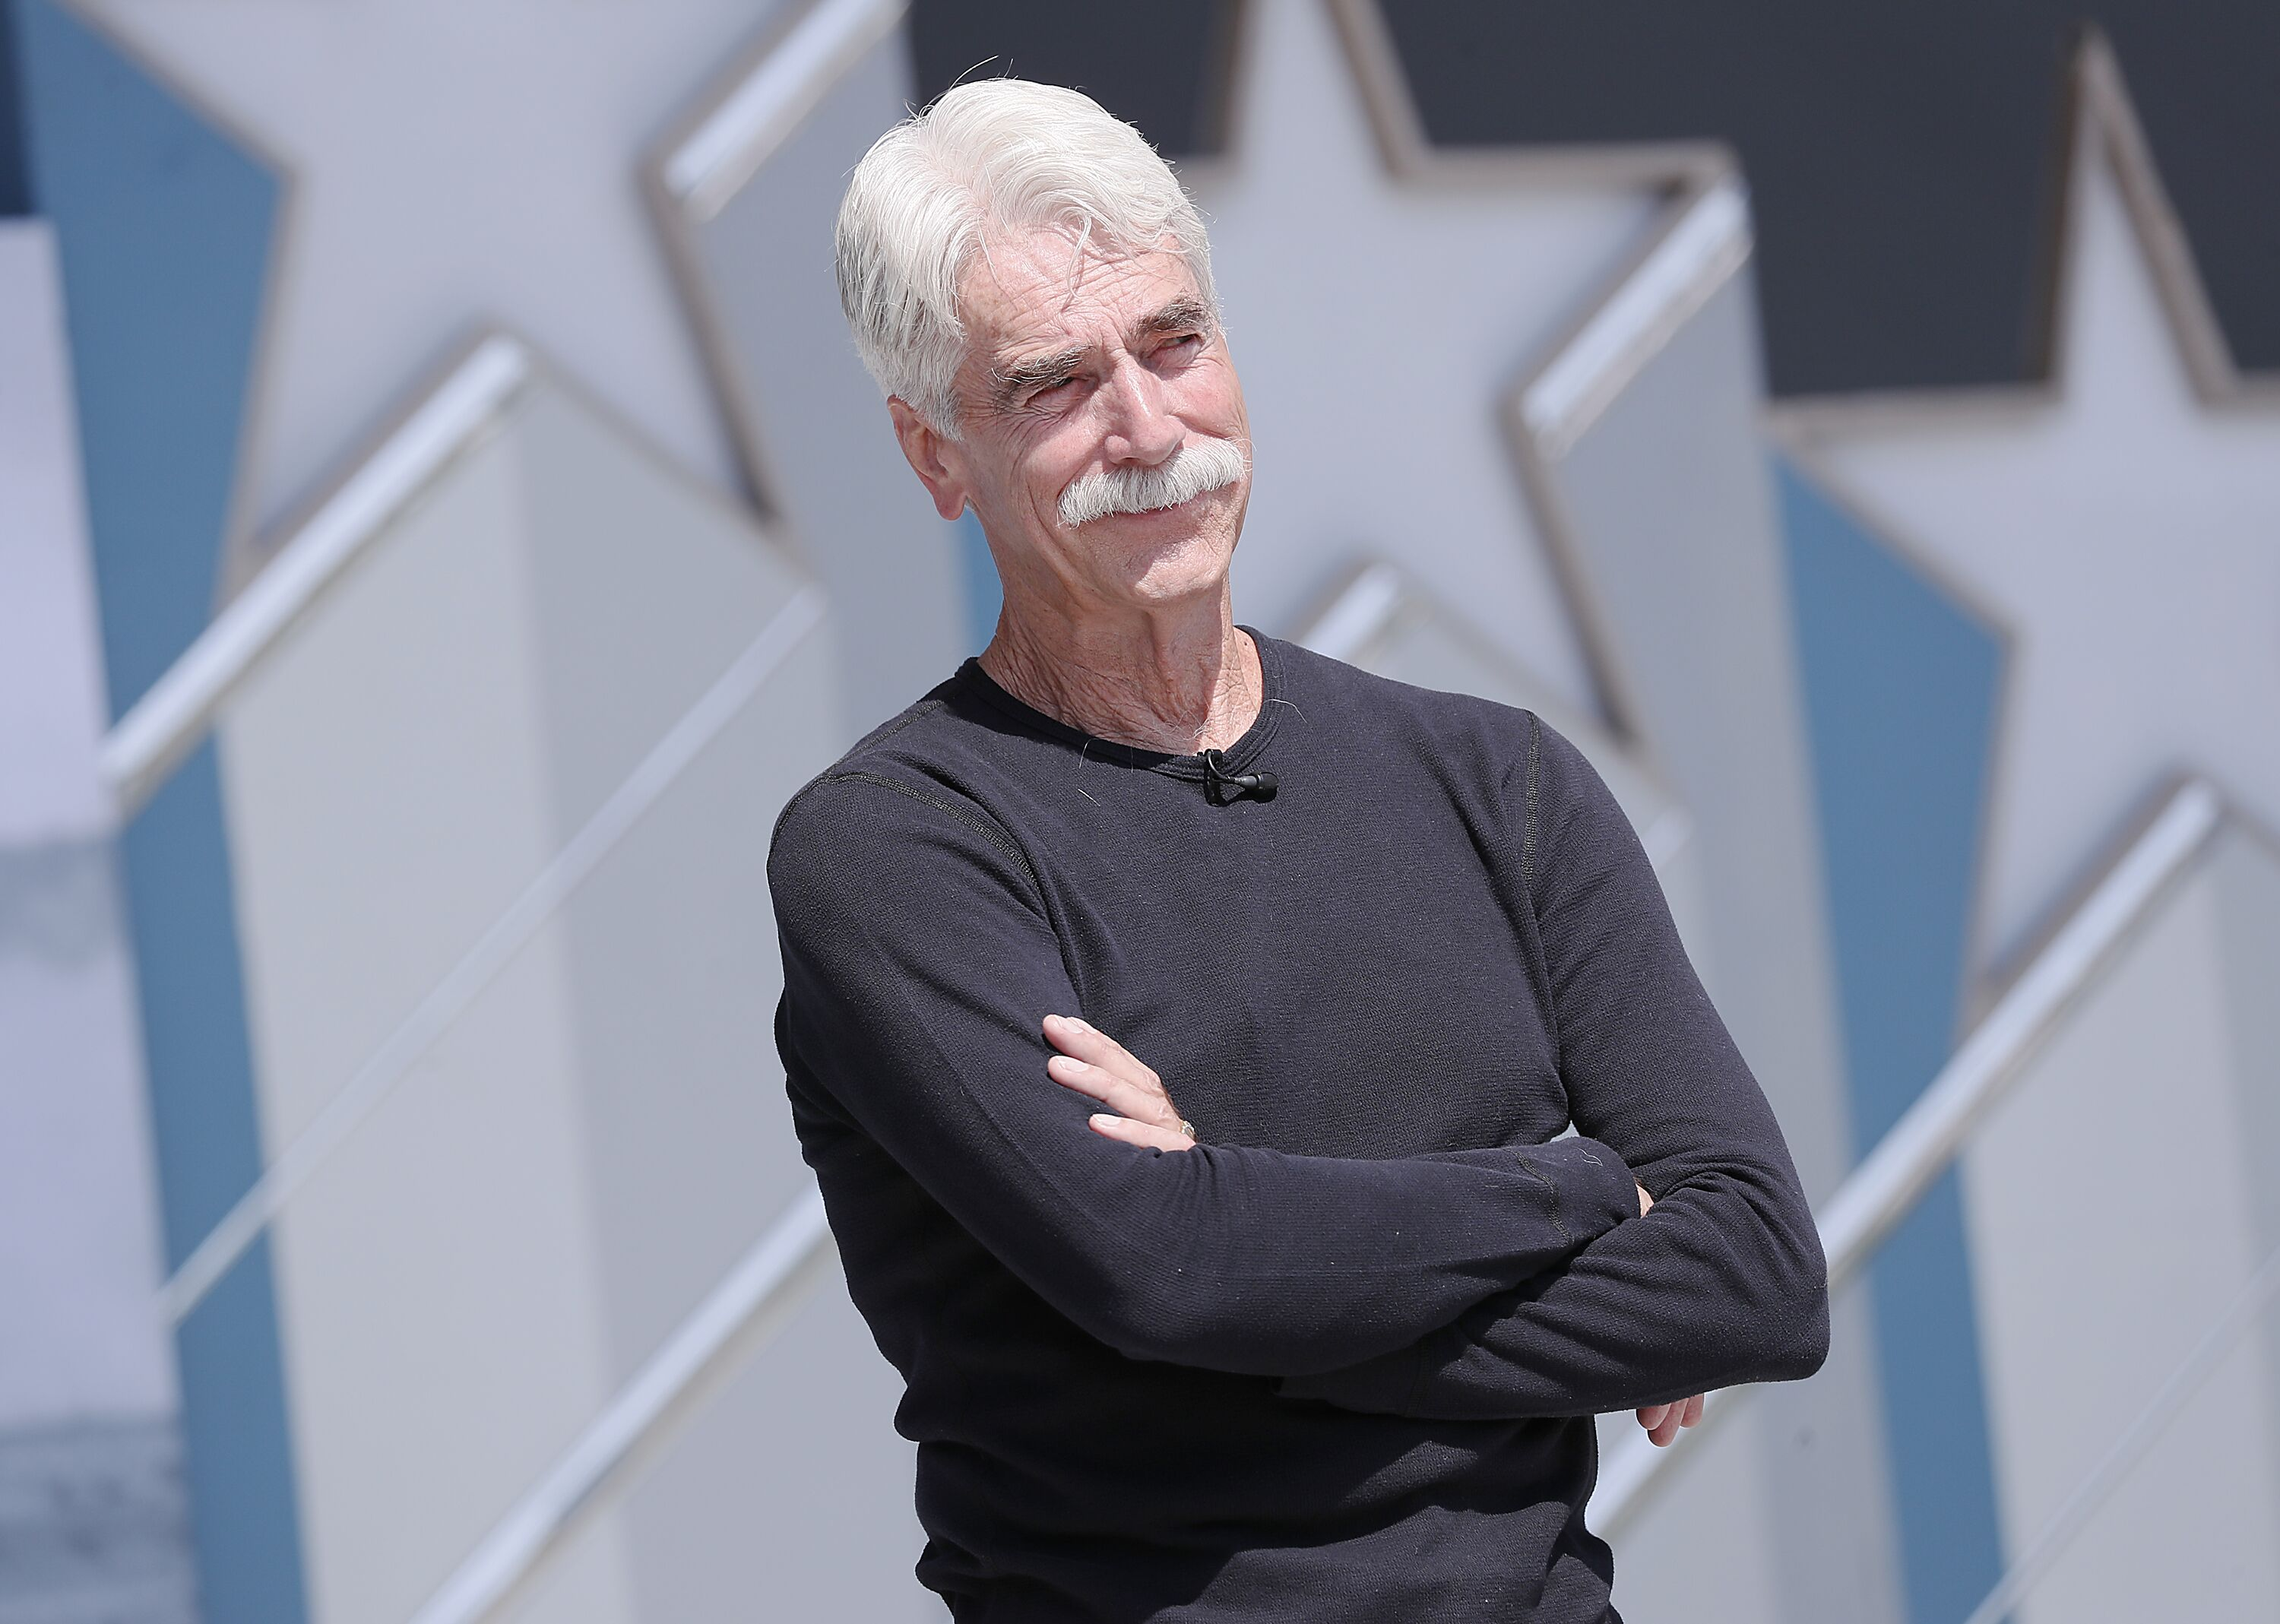 Sam Elliott at the National Memorial Day Concert - Rehearsals on May 25, 2019 | Photo: Getty Images